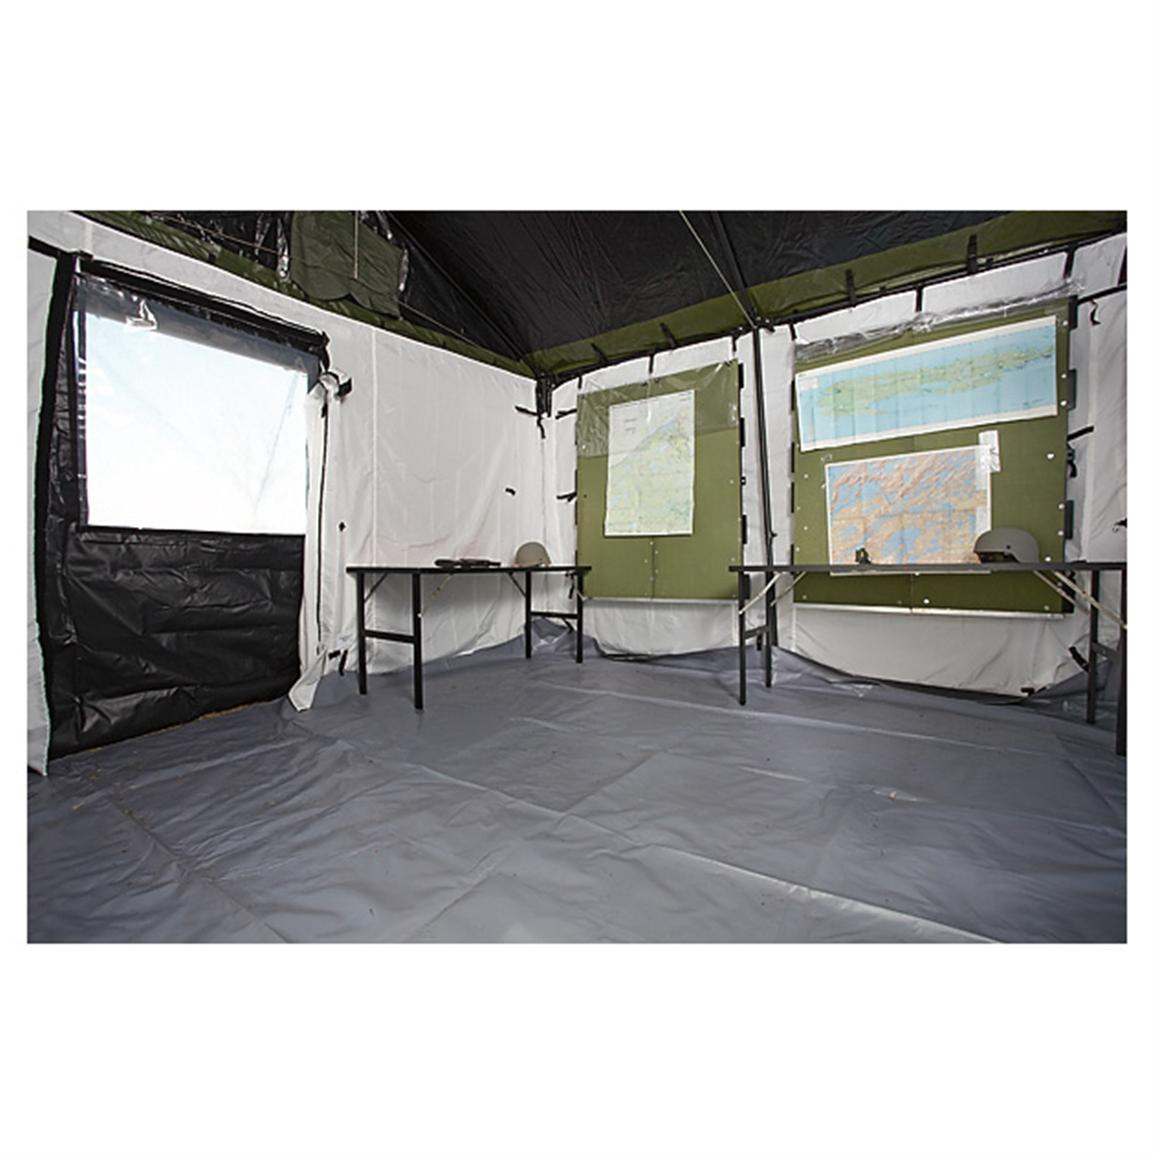 Huge 11 x 11 foot interior and two 36 x 36  covered windows  sc 1 st  Sportsmanu0027s Guide & New U.S. Military Surplus 11x11u0027 Waterproof Tactical Command Post ...